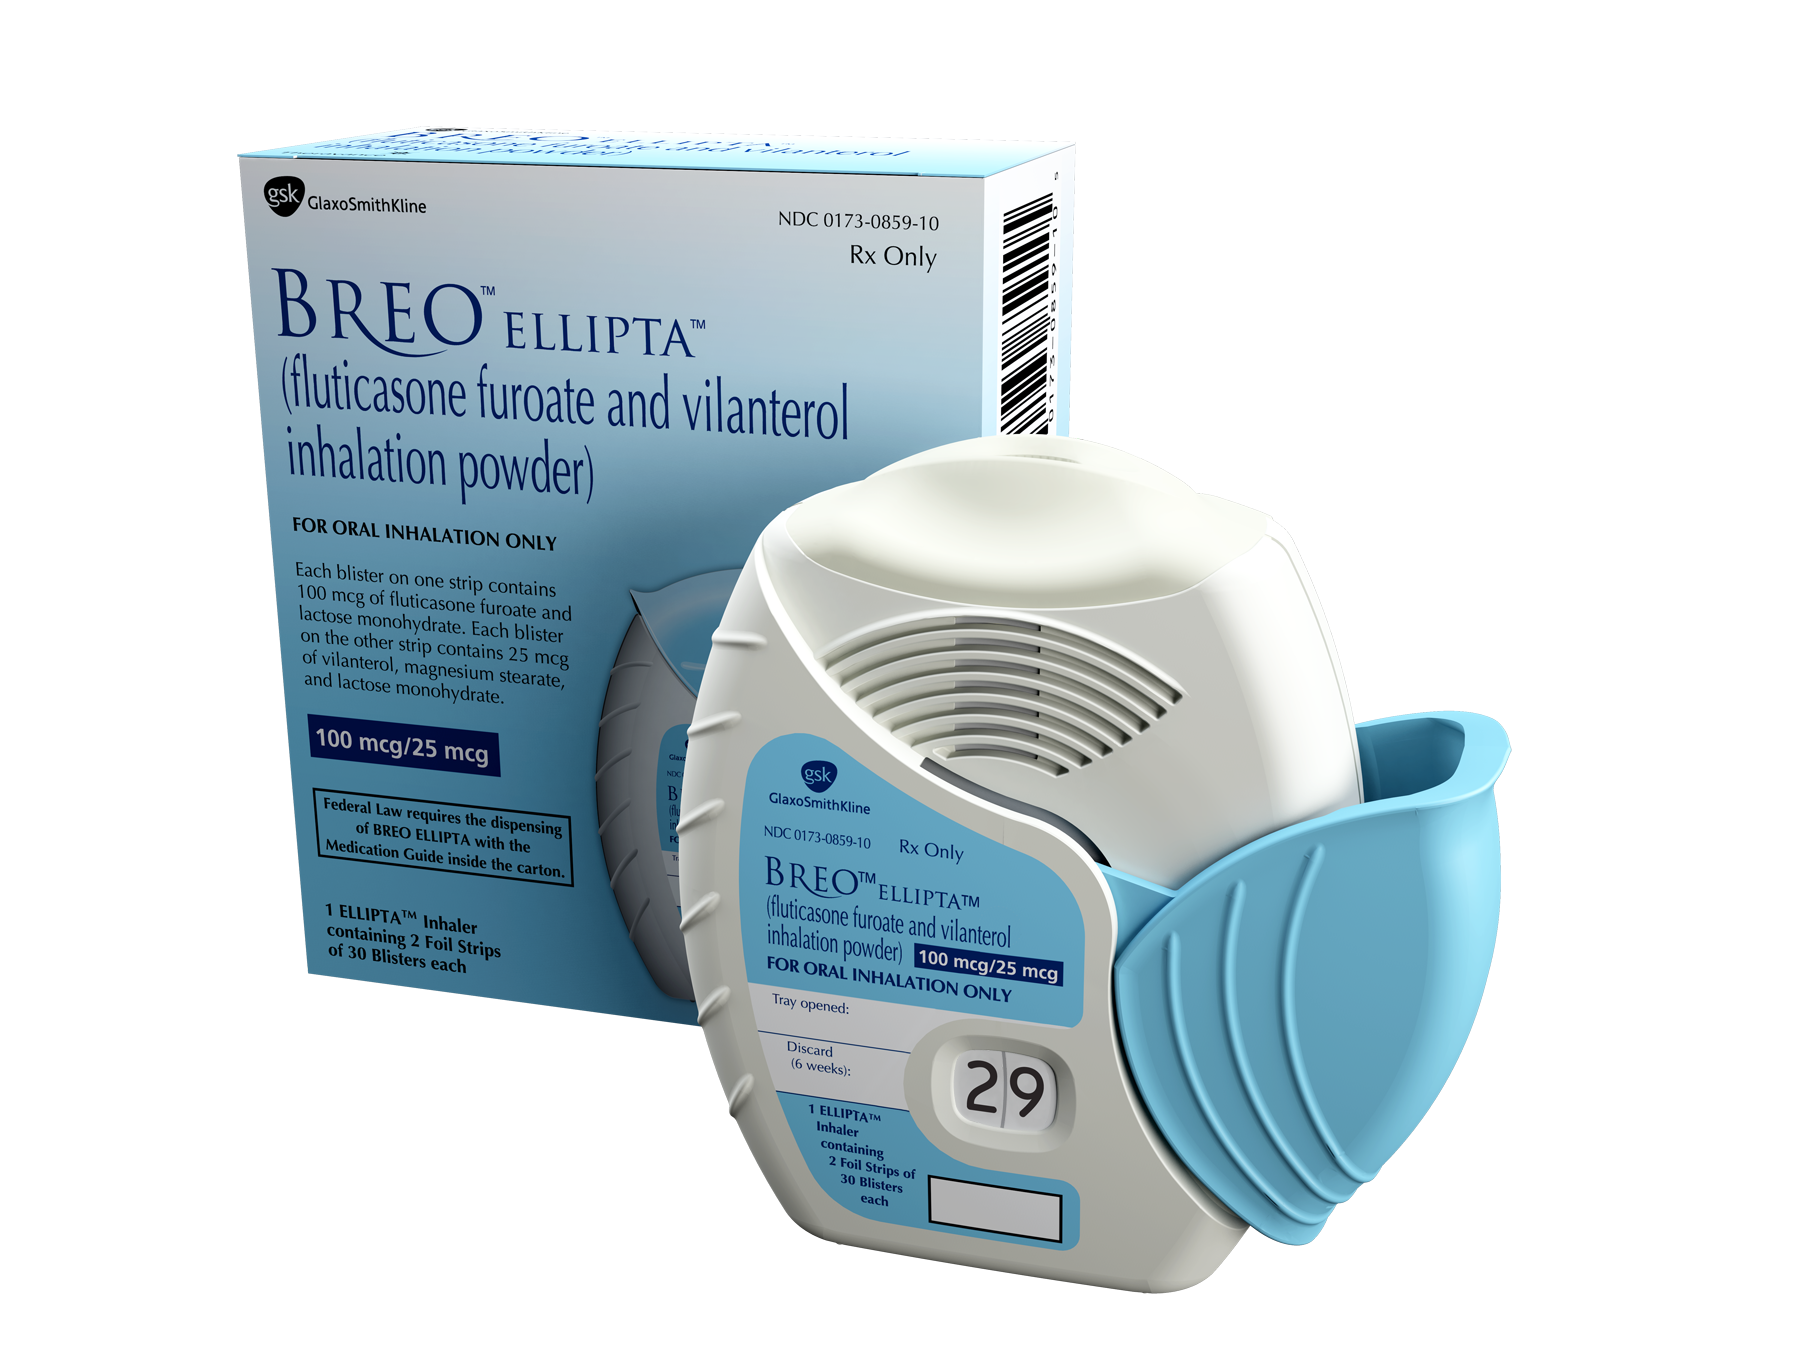 Breo Ellipta Now Approved as Asthma Treatment for Adult Patients in Canada